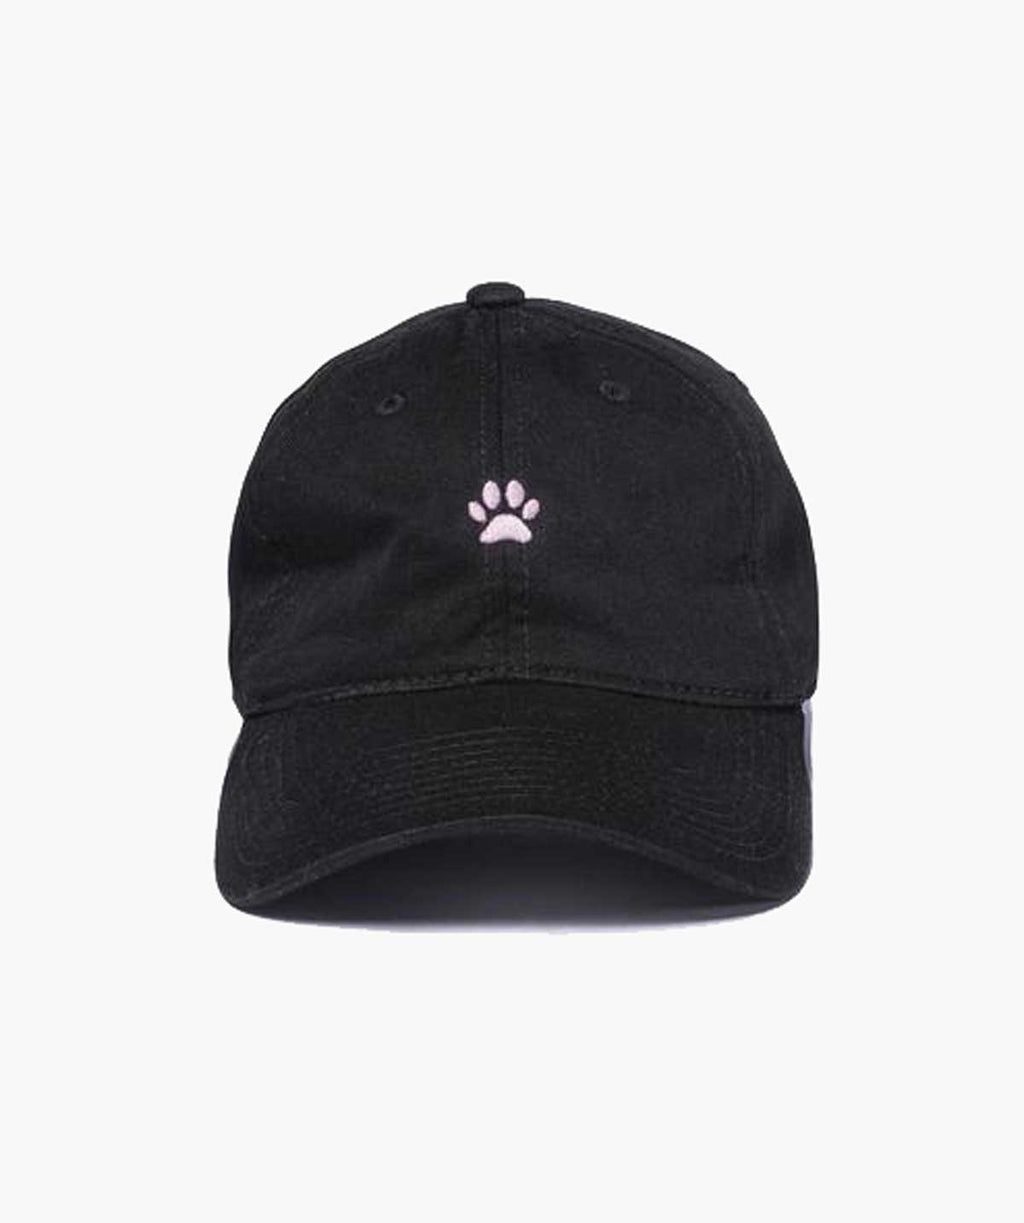 Dad Hat - Black/Pink - MOD